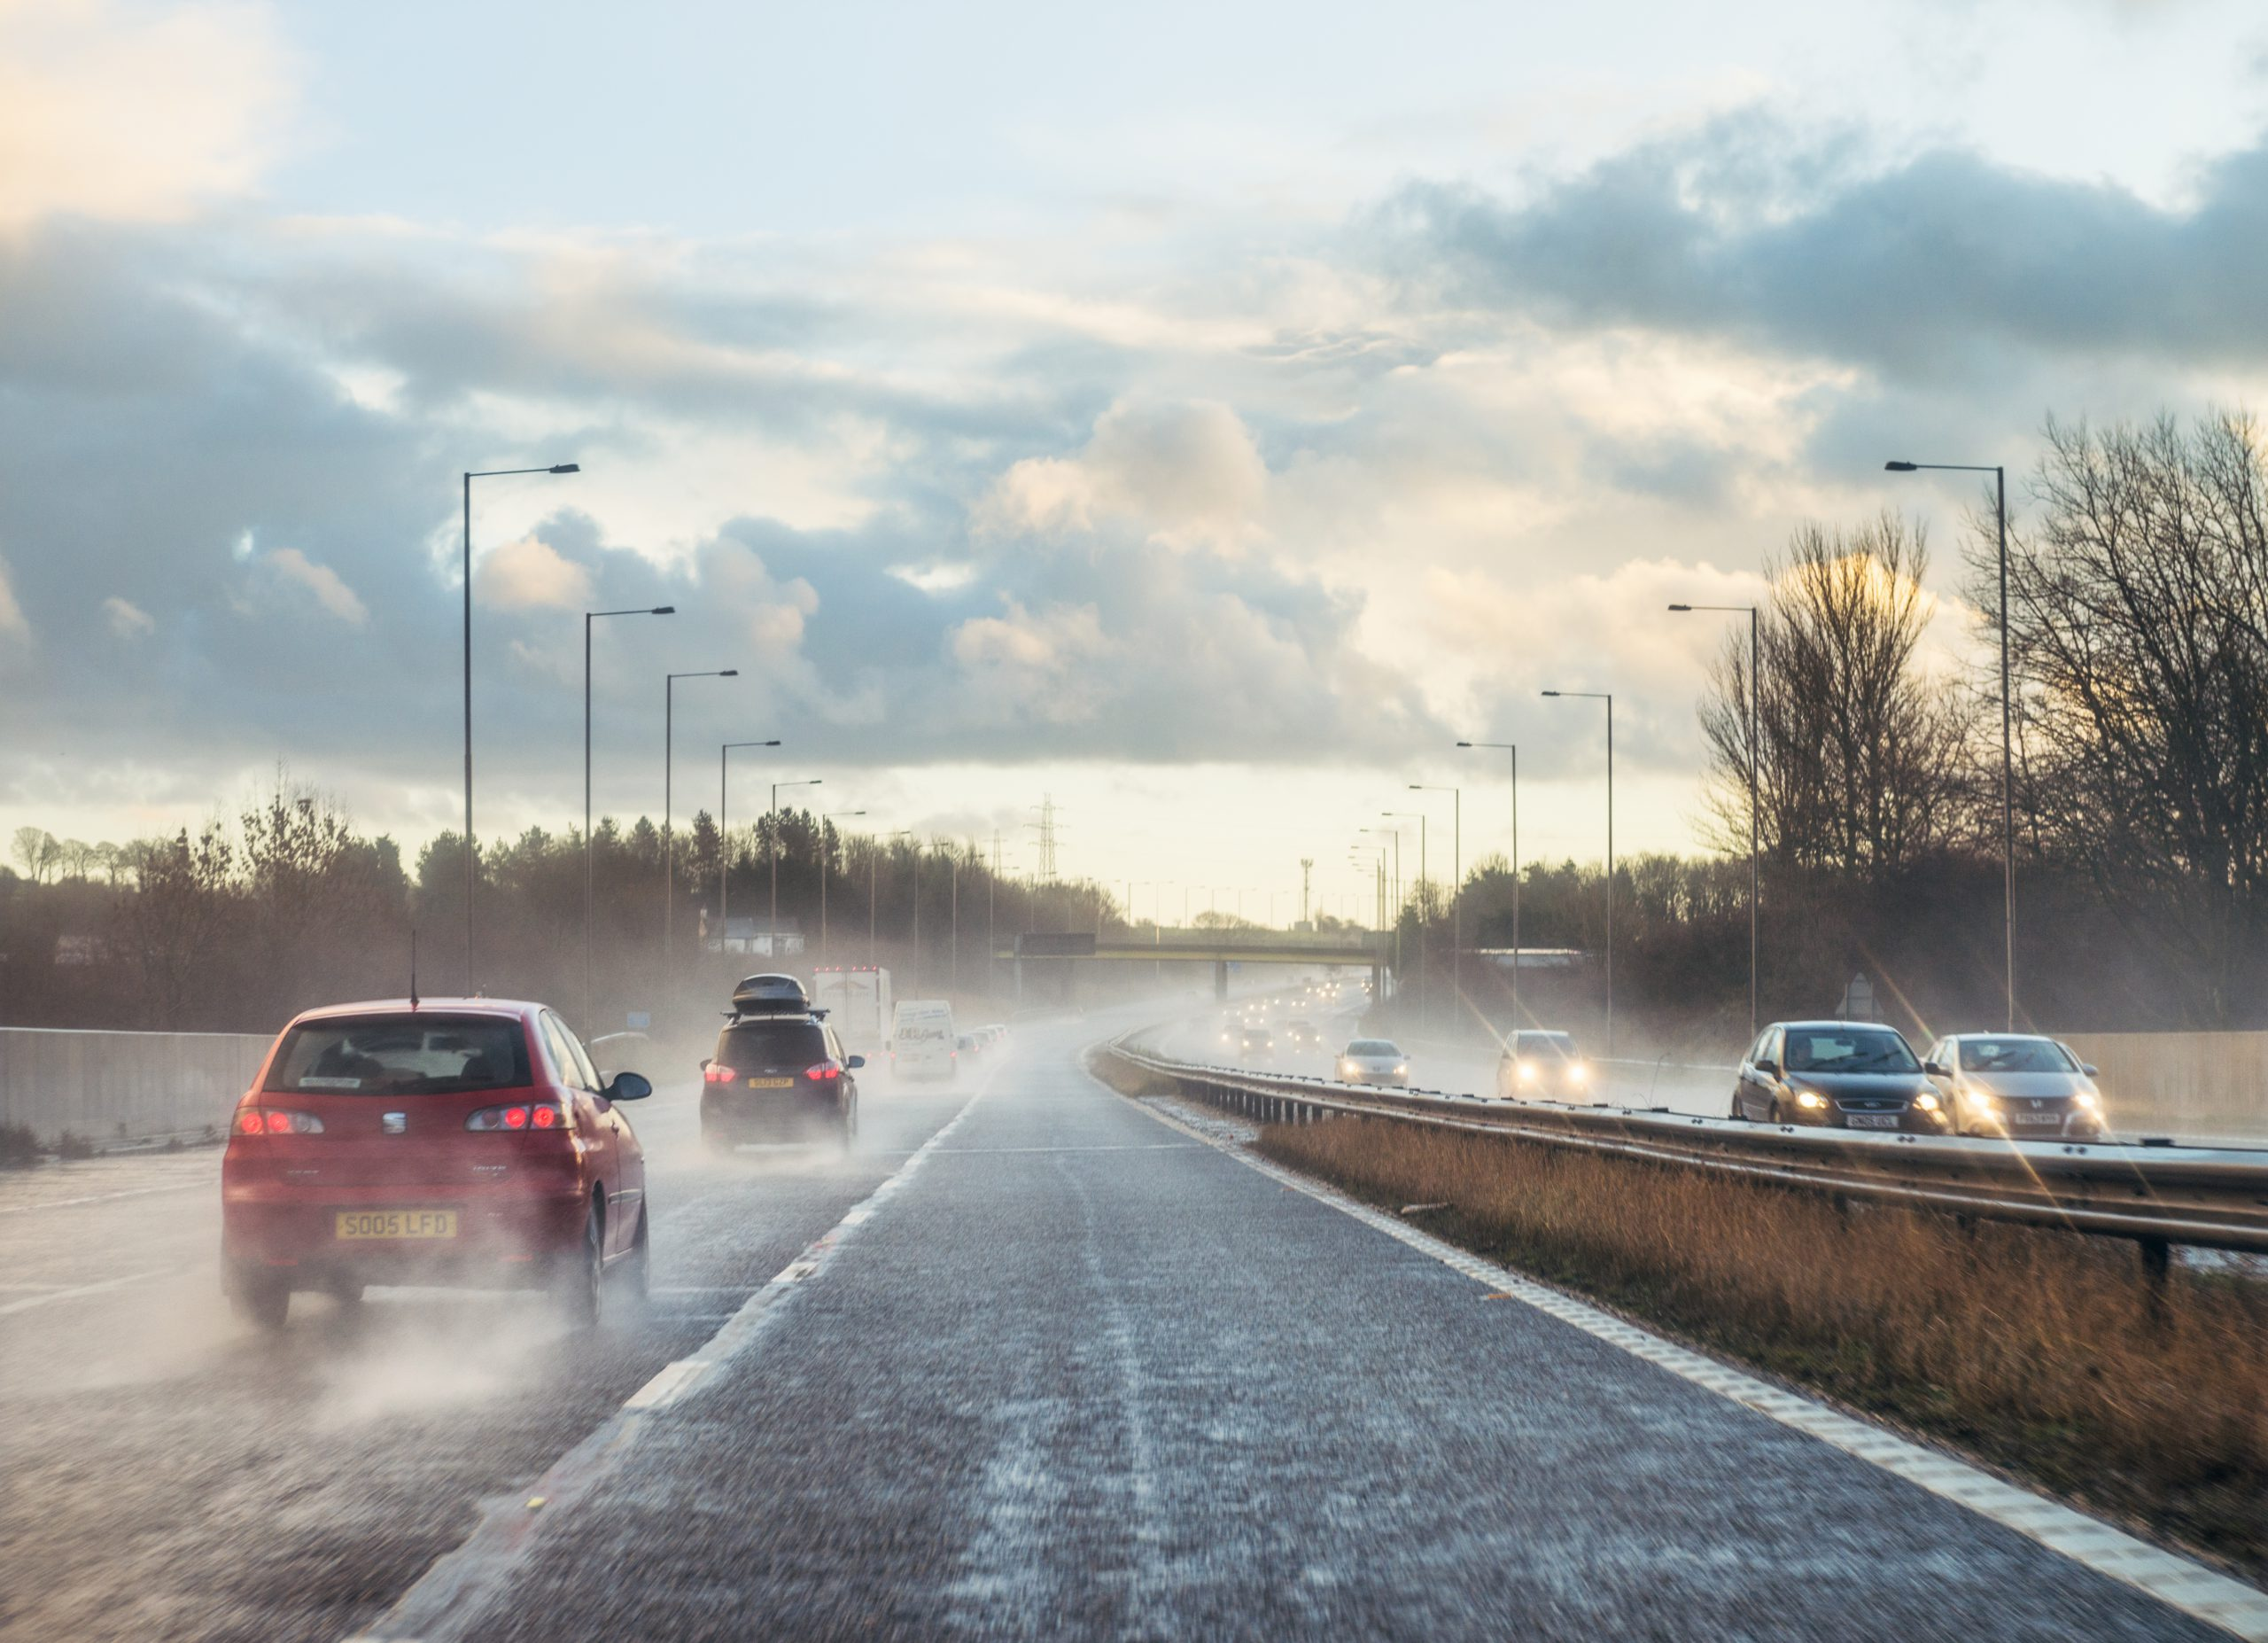 How to adapt your driving to the road conditions and weather